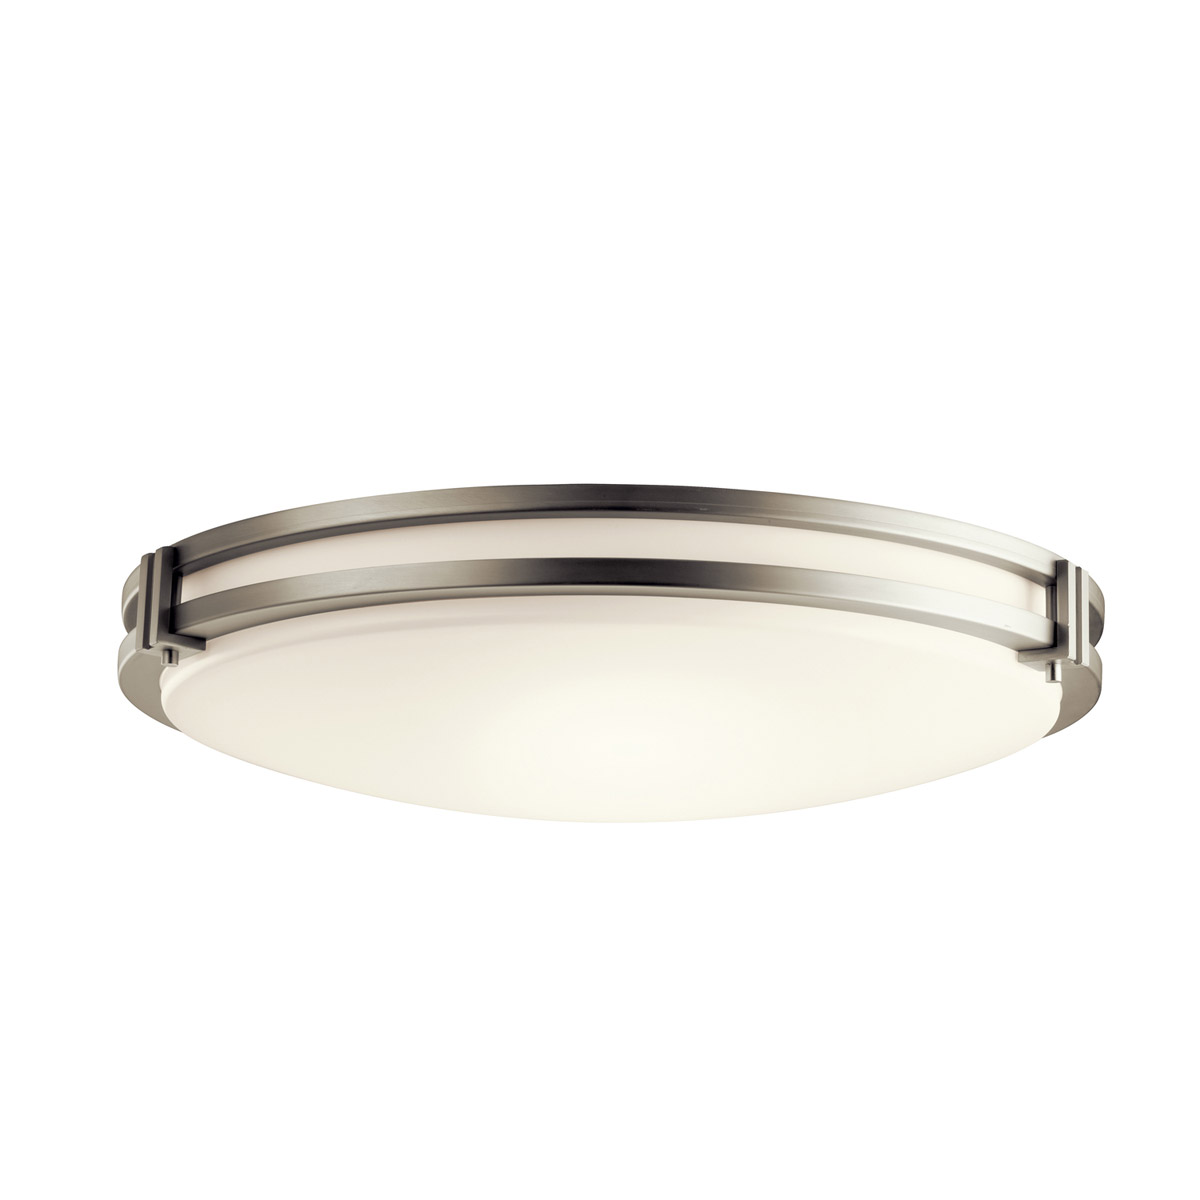 Kichler Lighting Signature 3 Light Fluorescent Flush Mount in Brushed Nickel 10828NI photo thumbnail